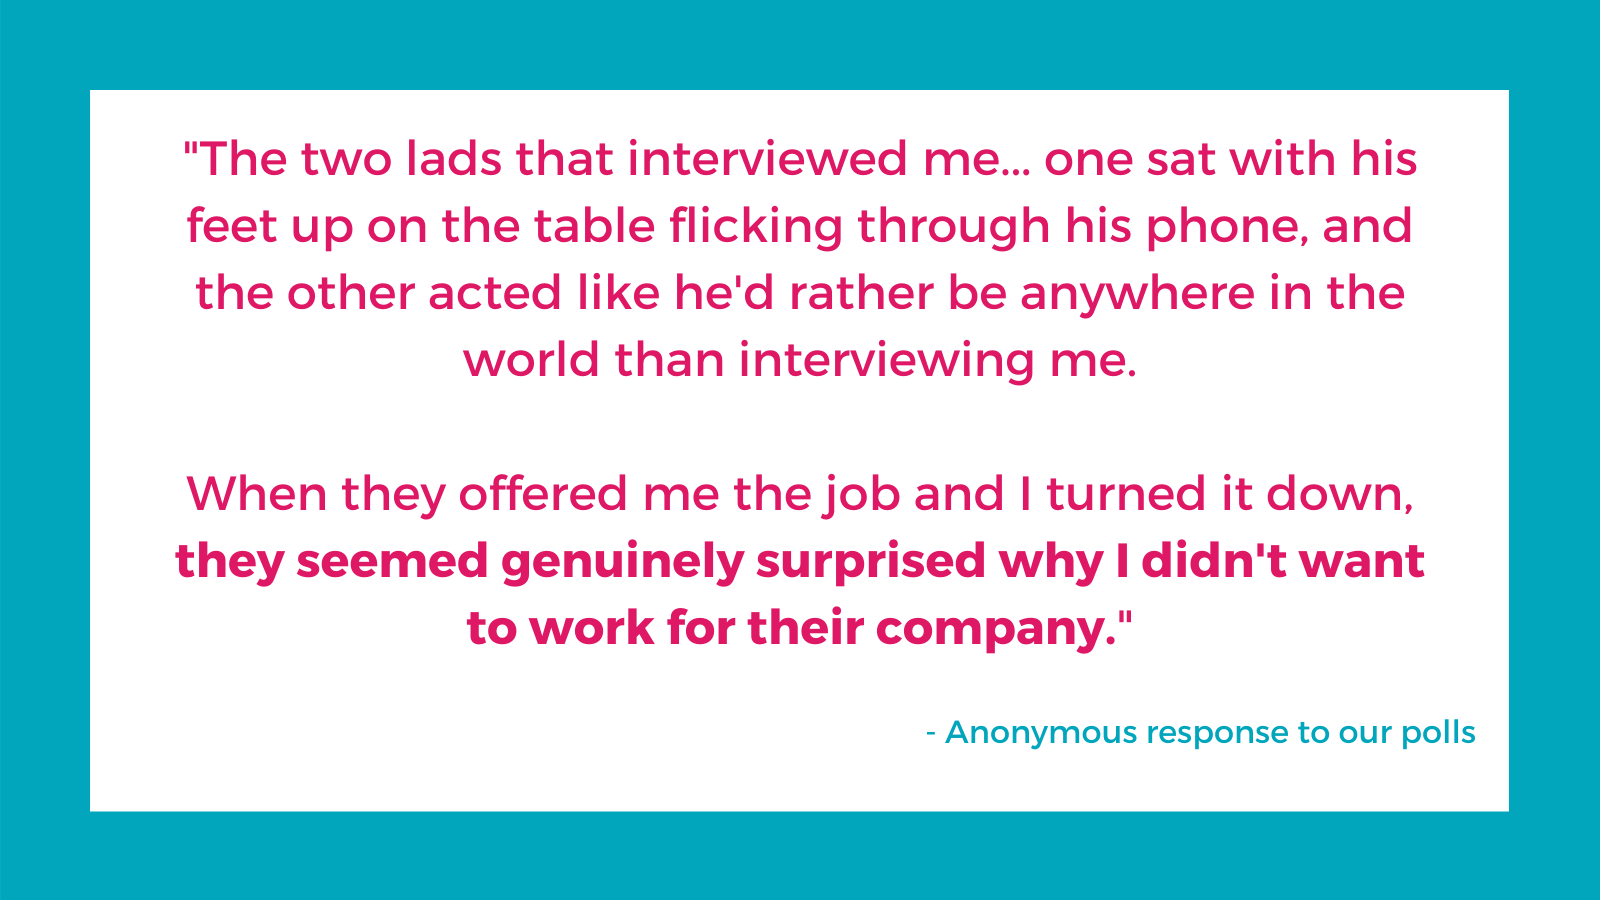 Quote from a respondent about a negative interview experience